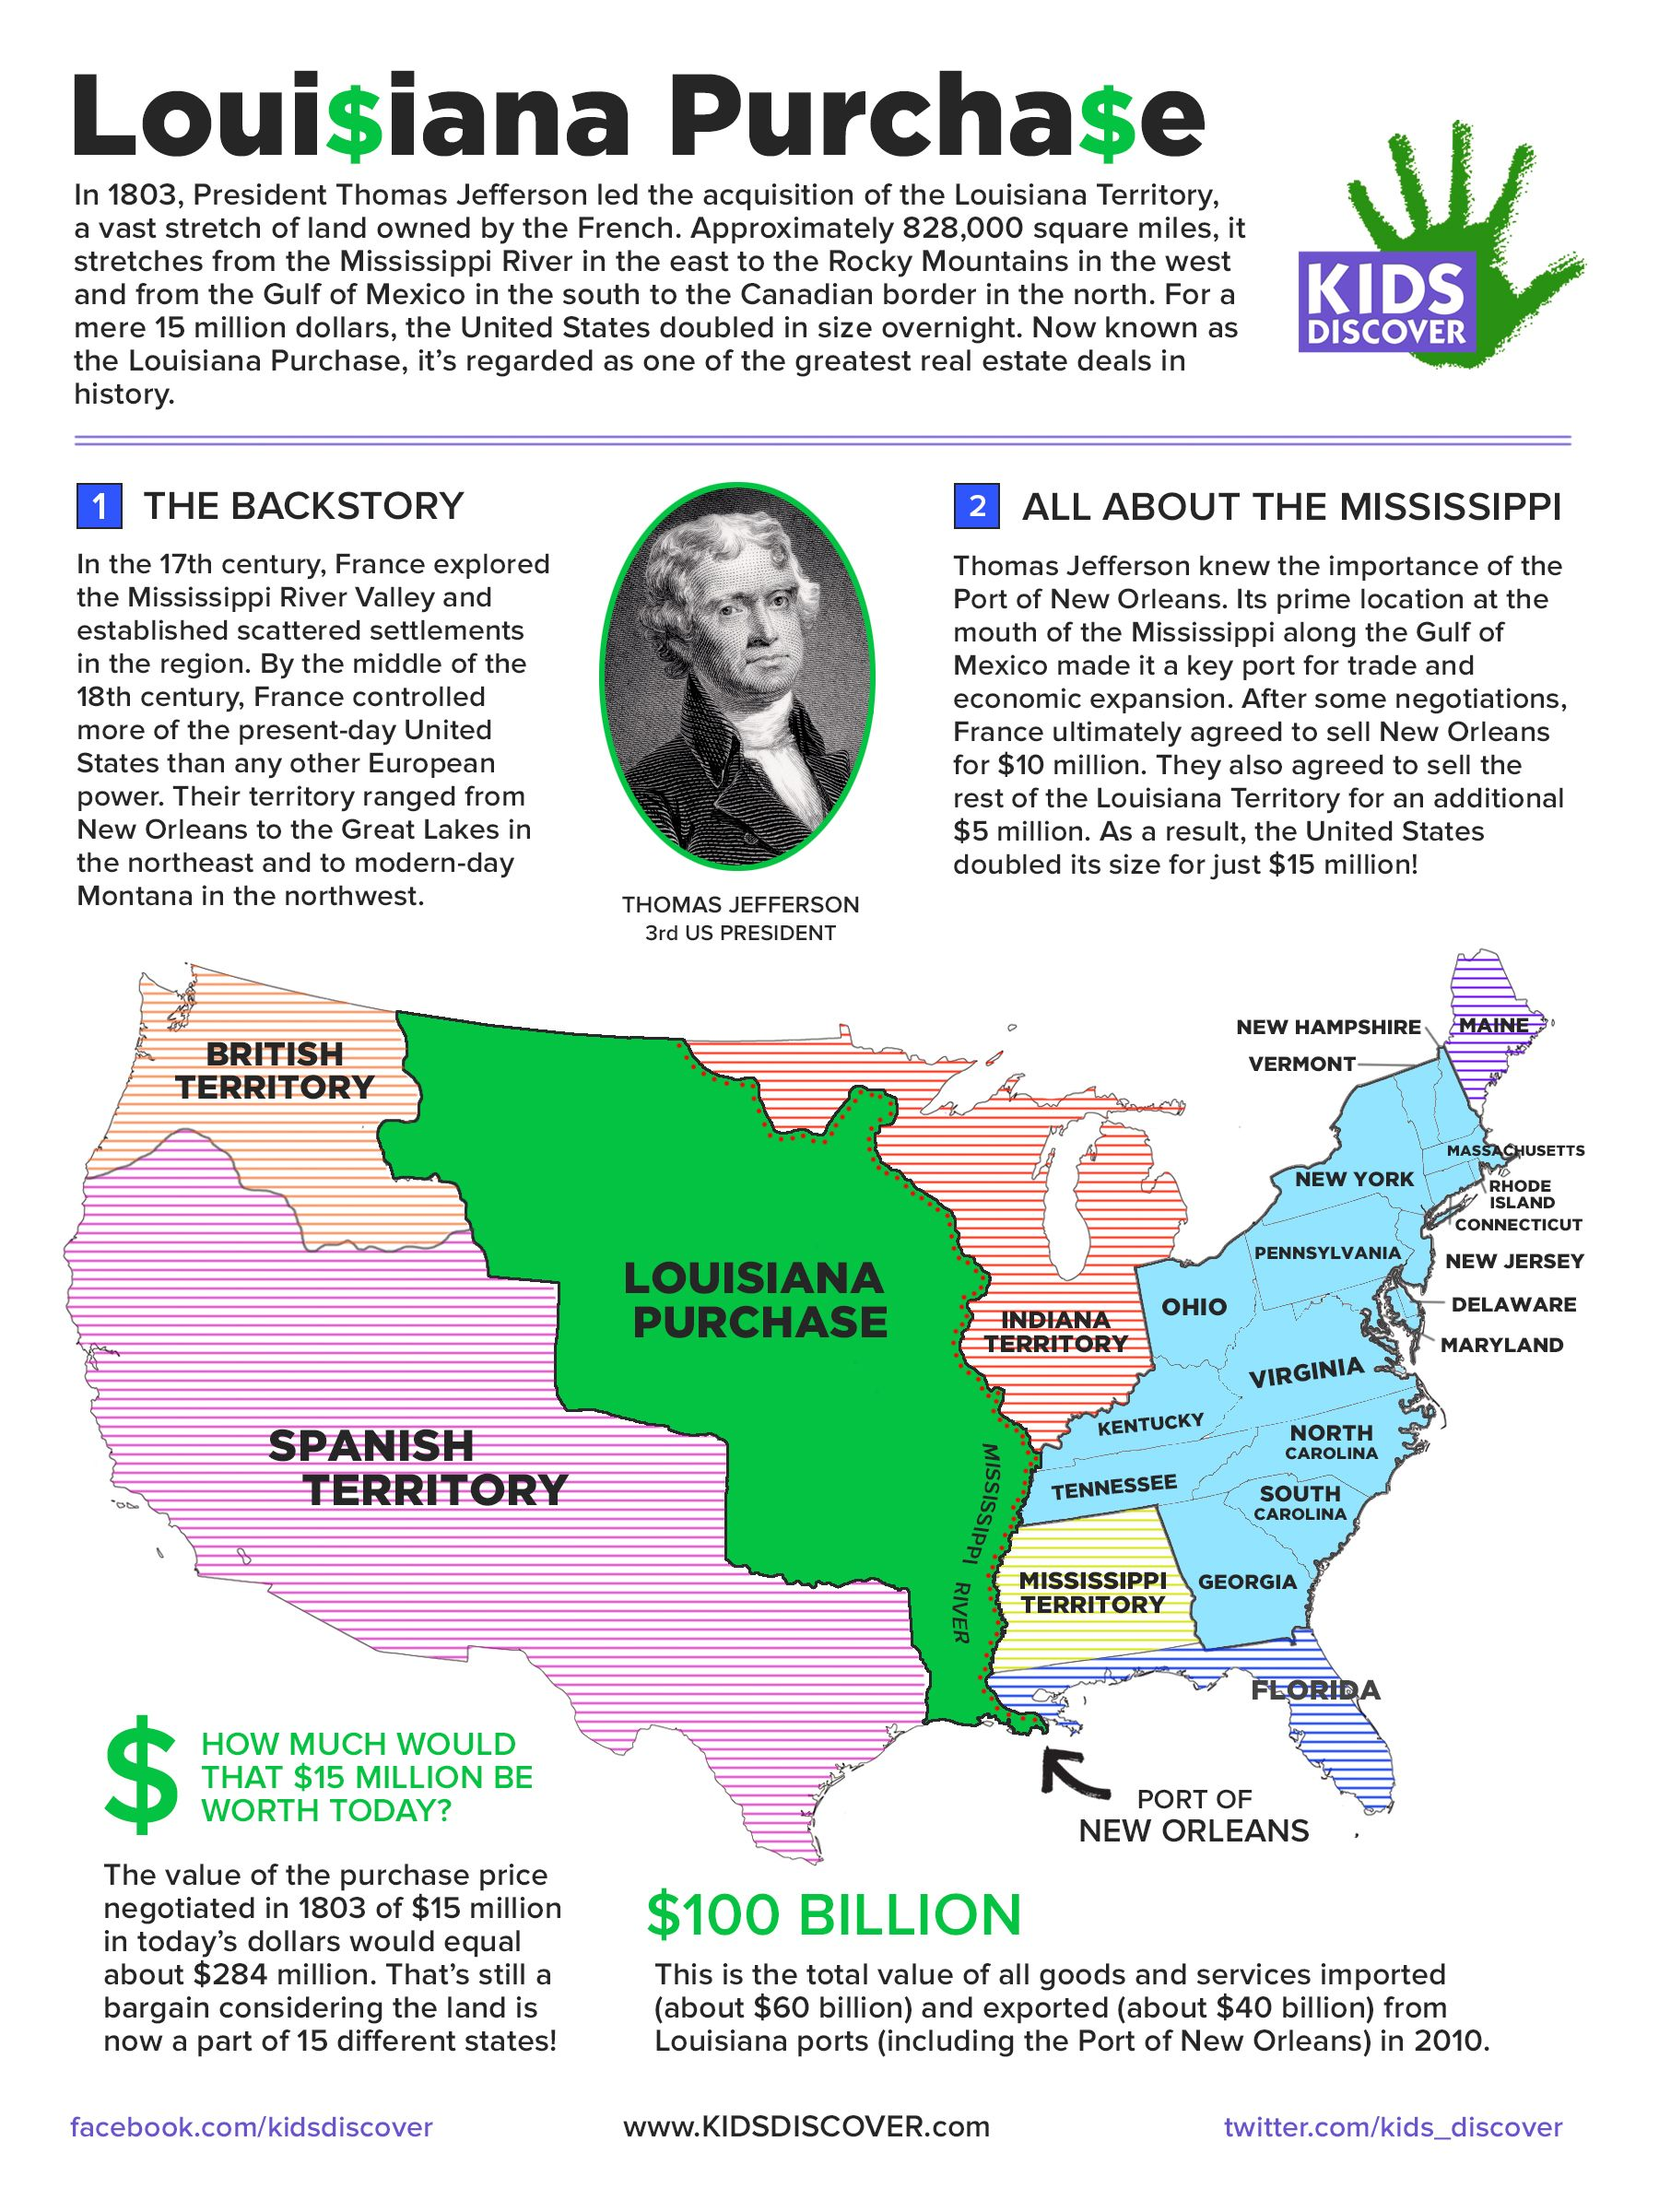 What Is Now Regarded As One Of The Greatest Real Estate Deals In History The Louisiana Purchase